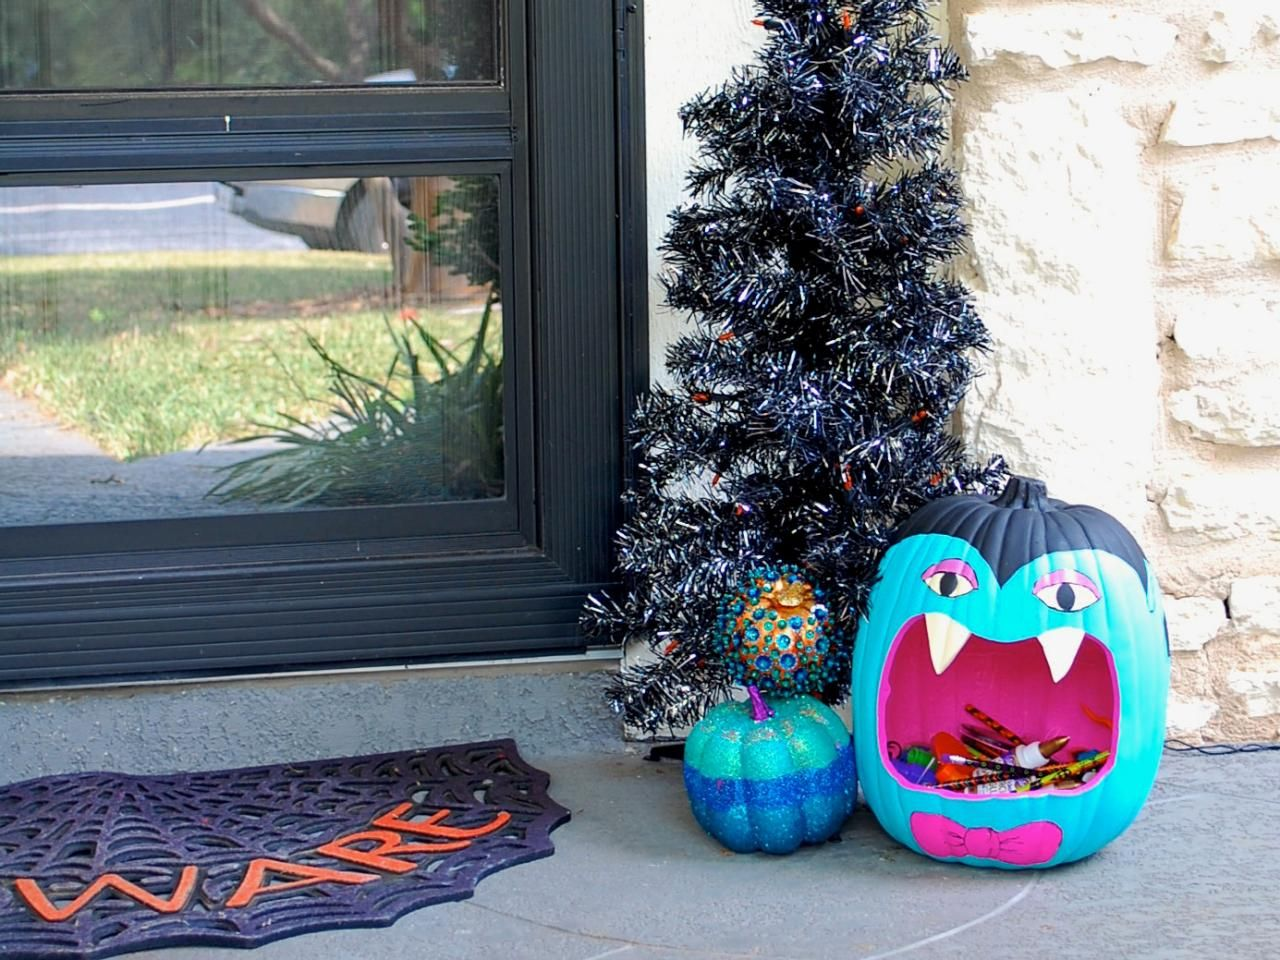 Halloween Decorations DIY Halloween, Teal pumpkin and Whimsical - diy outdoor halloween decorations